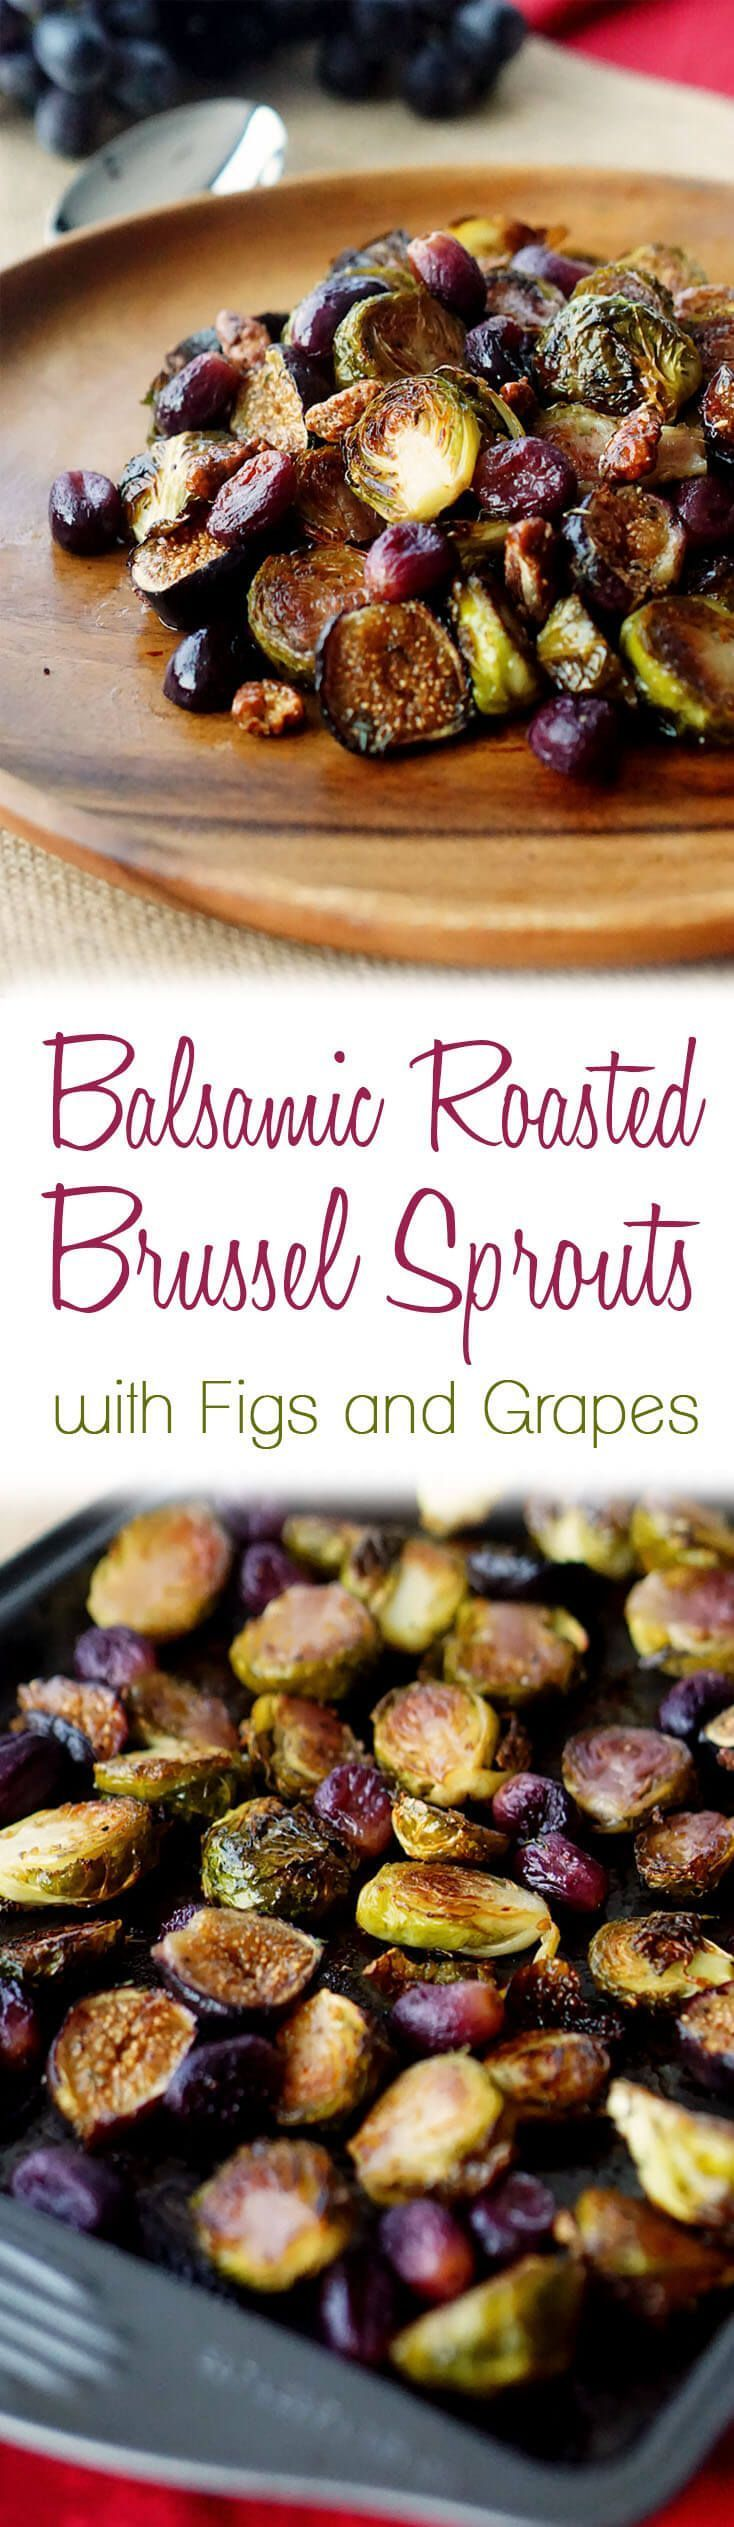 These Balsamic Roasted Brussel Sprouts with Grapes & Figs will make a perfect healthy Holiday side dish for Thanksgiving or Christmas. #christmas #holidays #thanksgiving #brusselssprouts #sidedish #vegan #GlutenFree #paleo #whole30 #cleaneating